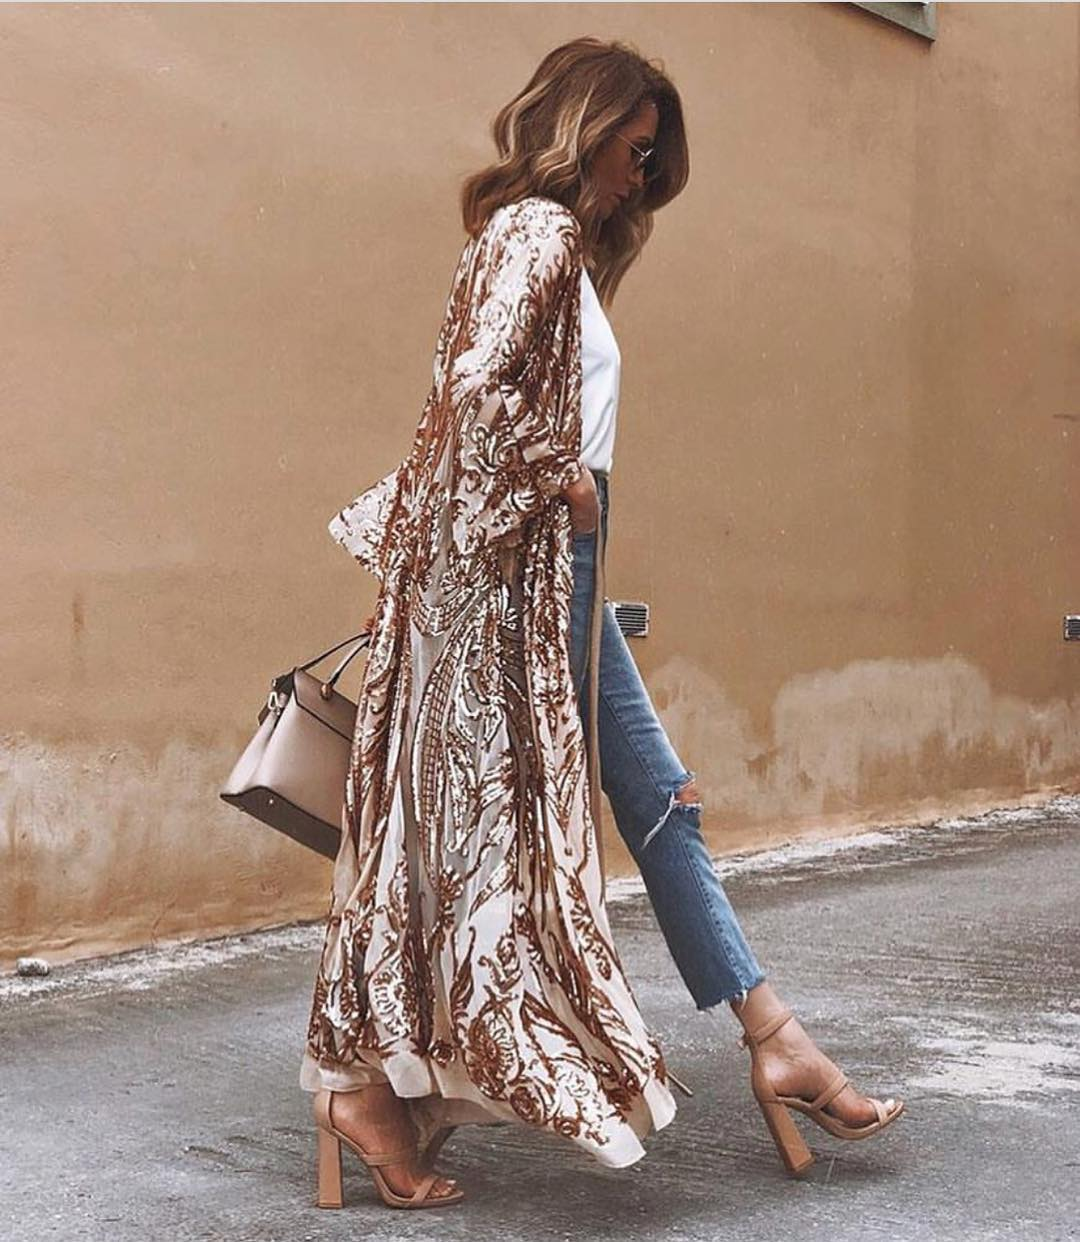 Can I Wear Shiny Gold Maxi Kimono With White Top And Ripped Jeans 2020